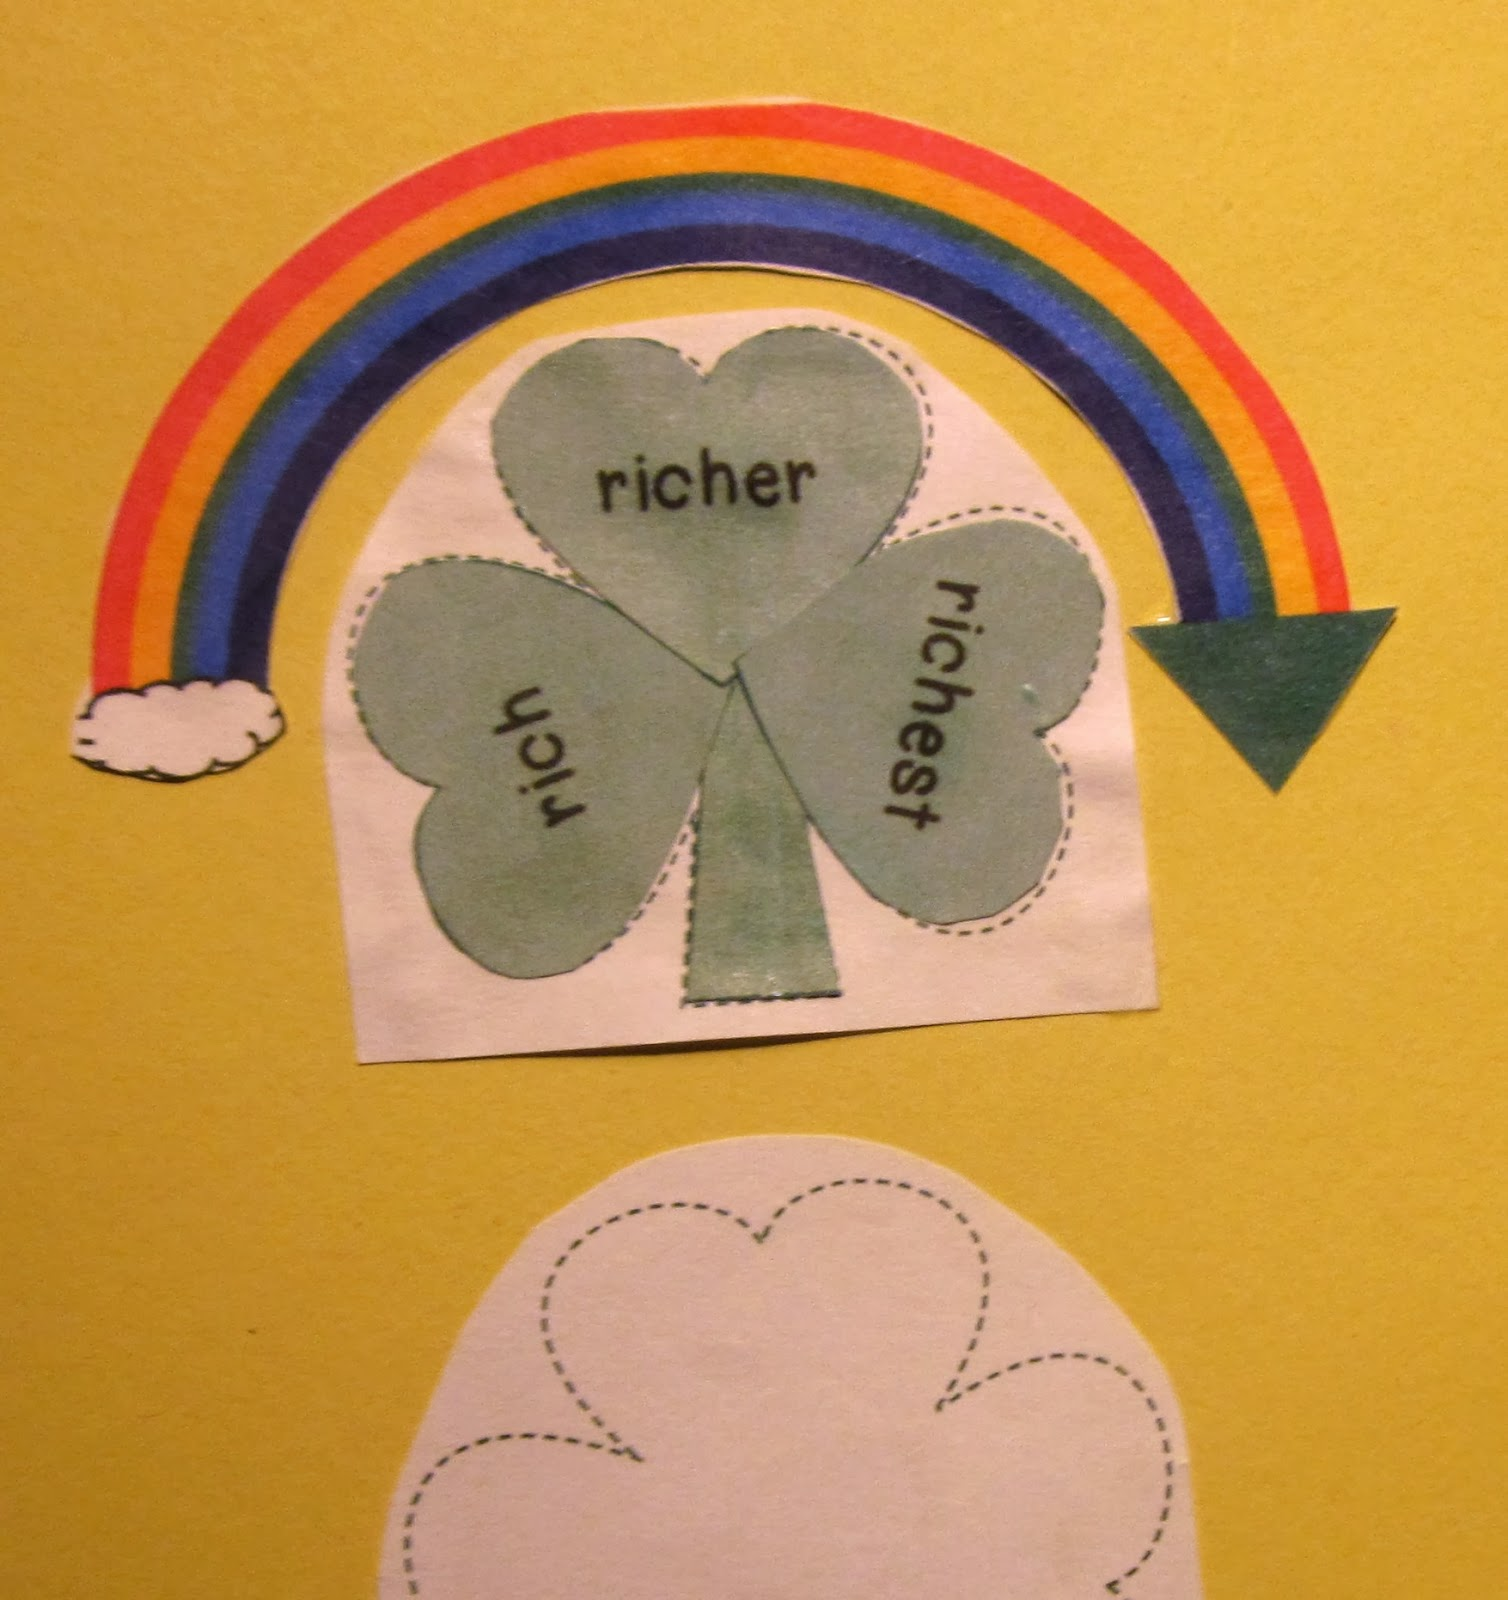 Positive-comparative-superlative-Adjectives-St-Patricks-Day-activities